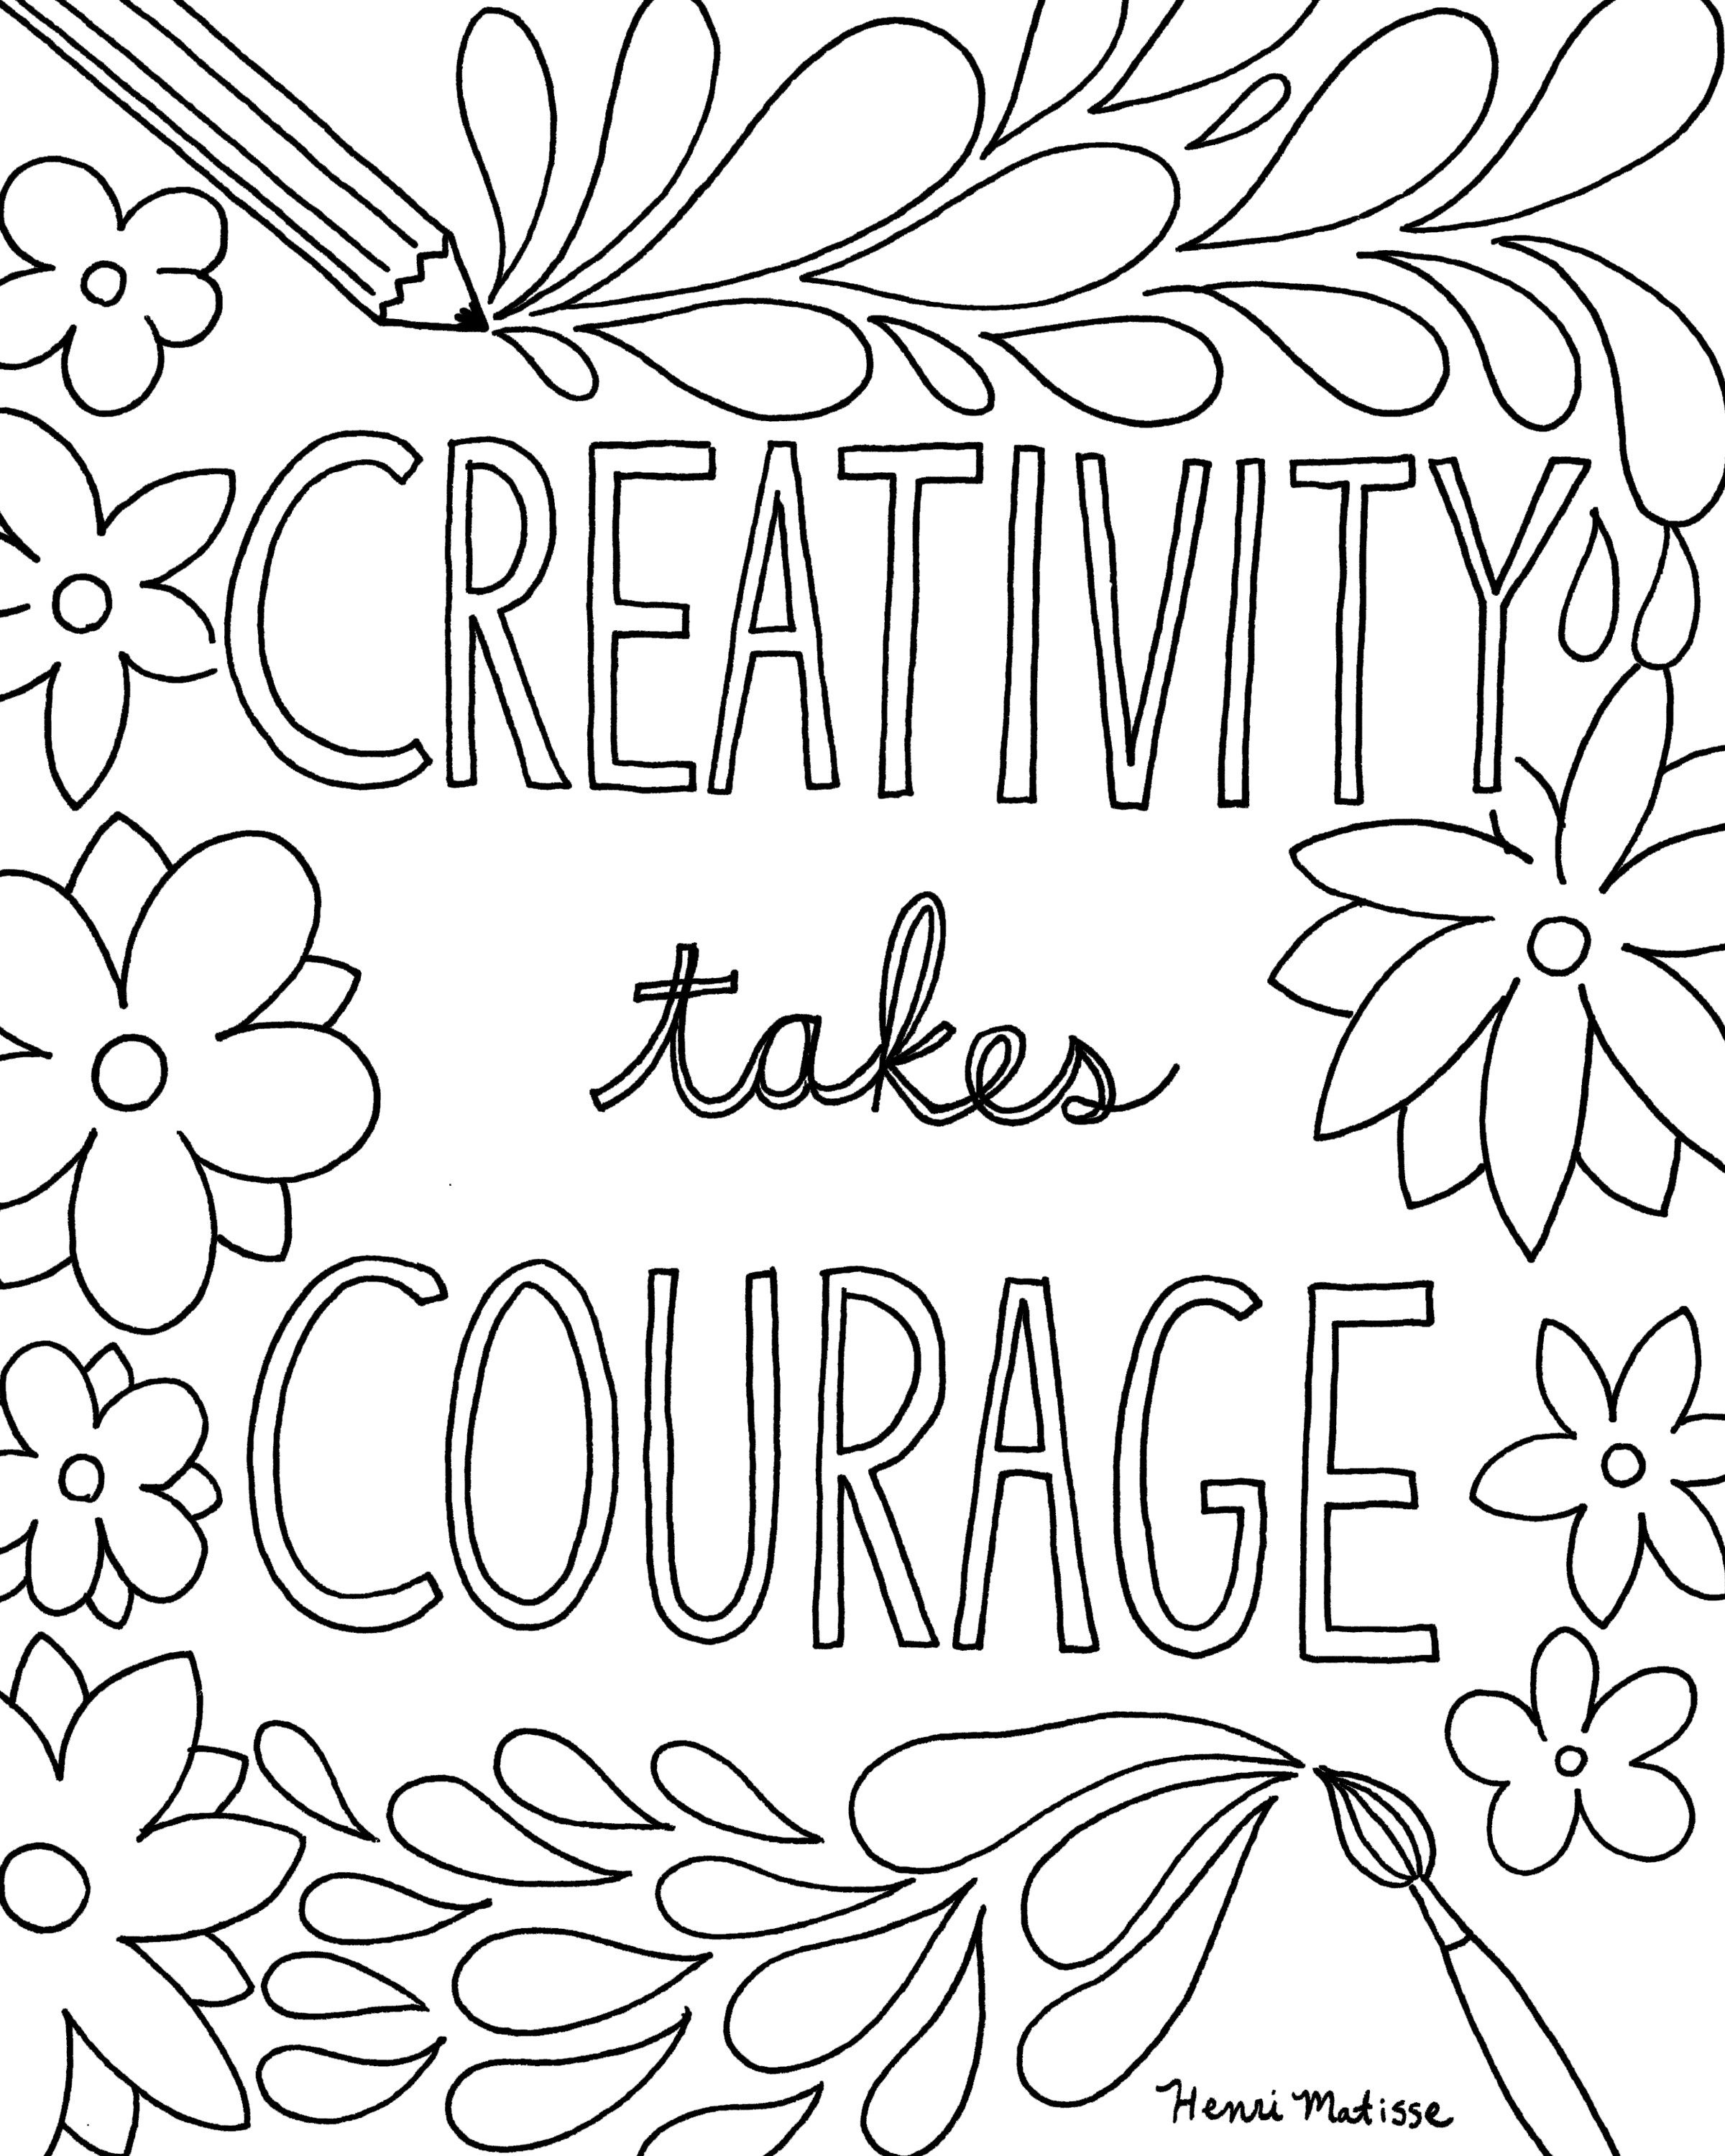 Free Printable Quote Coloring Pages For Grown-Ups | Drawing And - Free Printable Coloring Pages For March